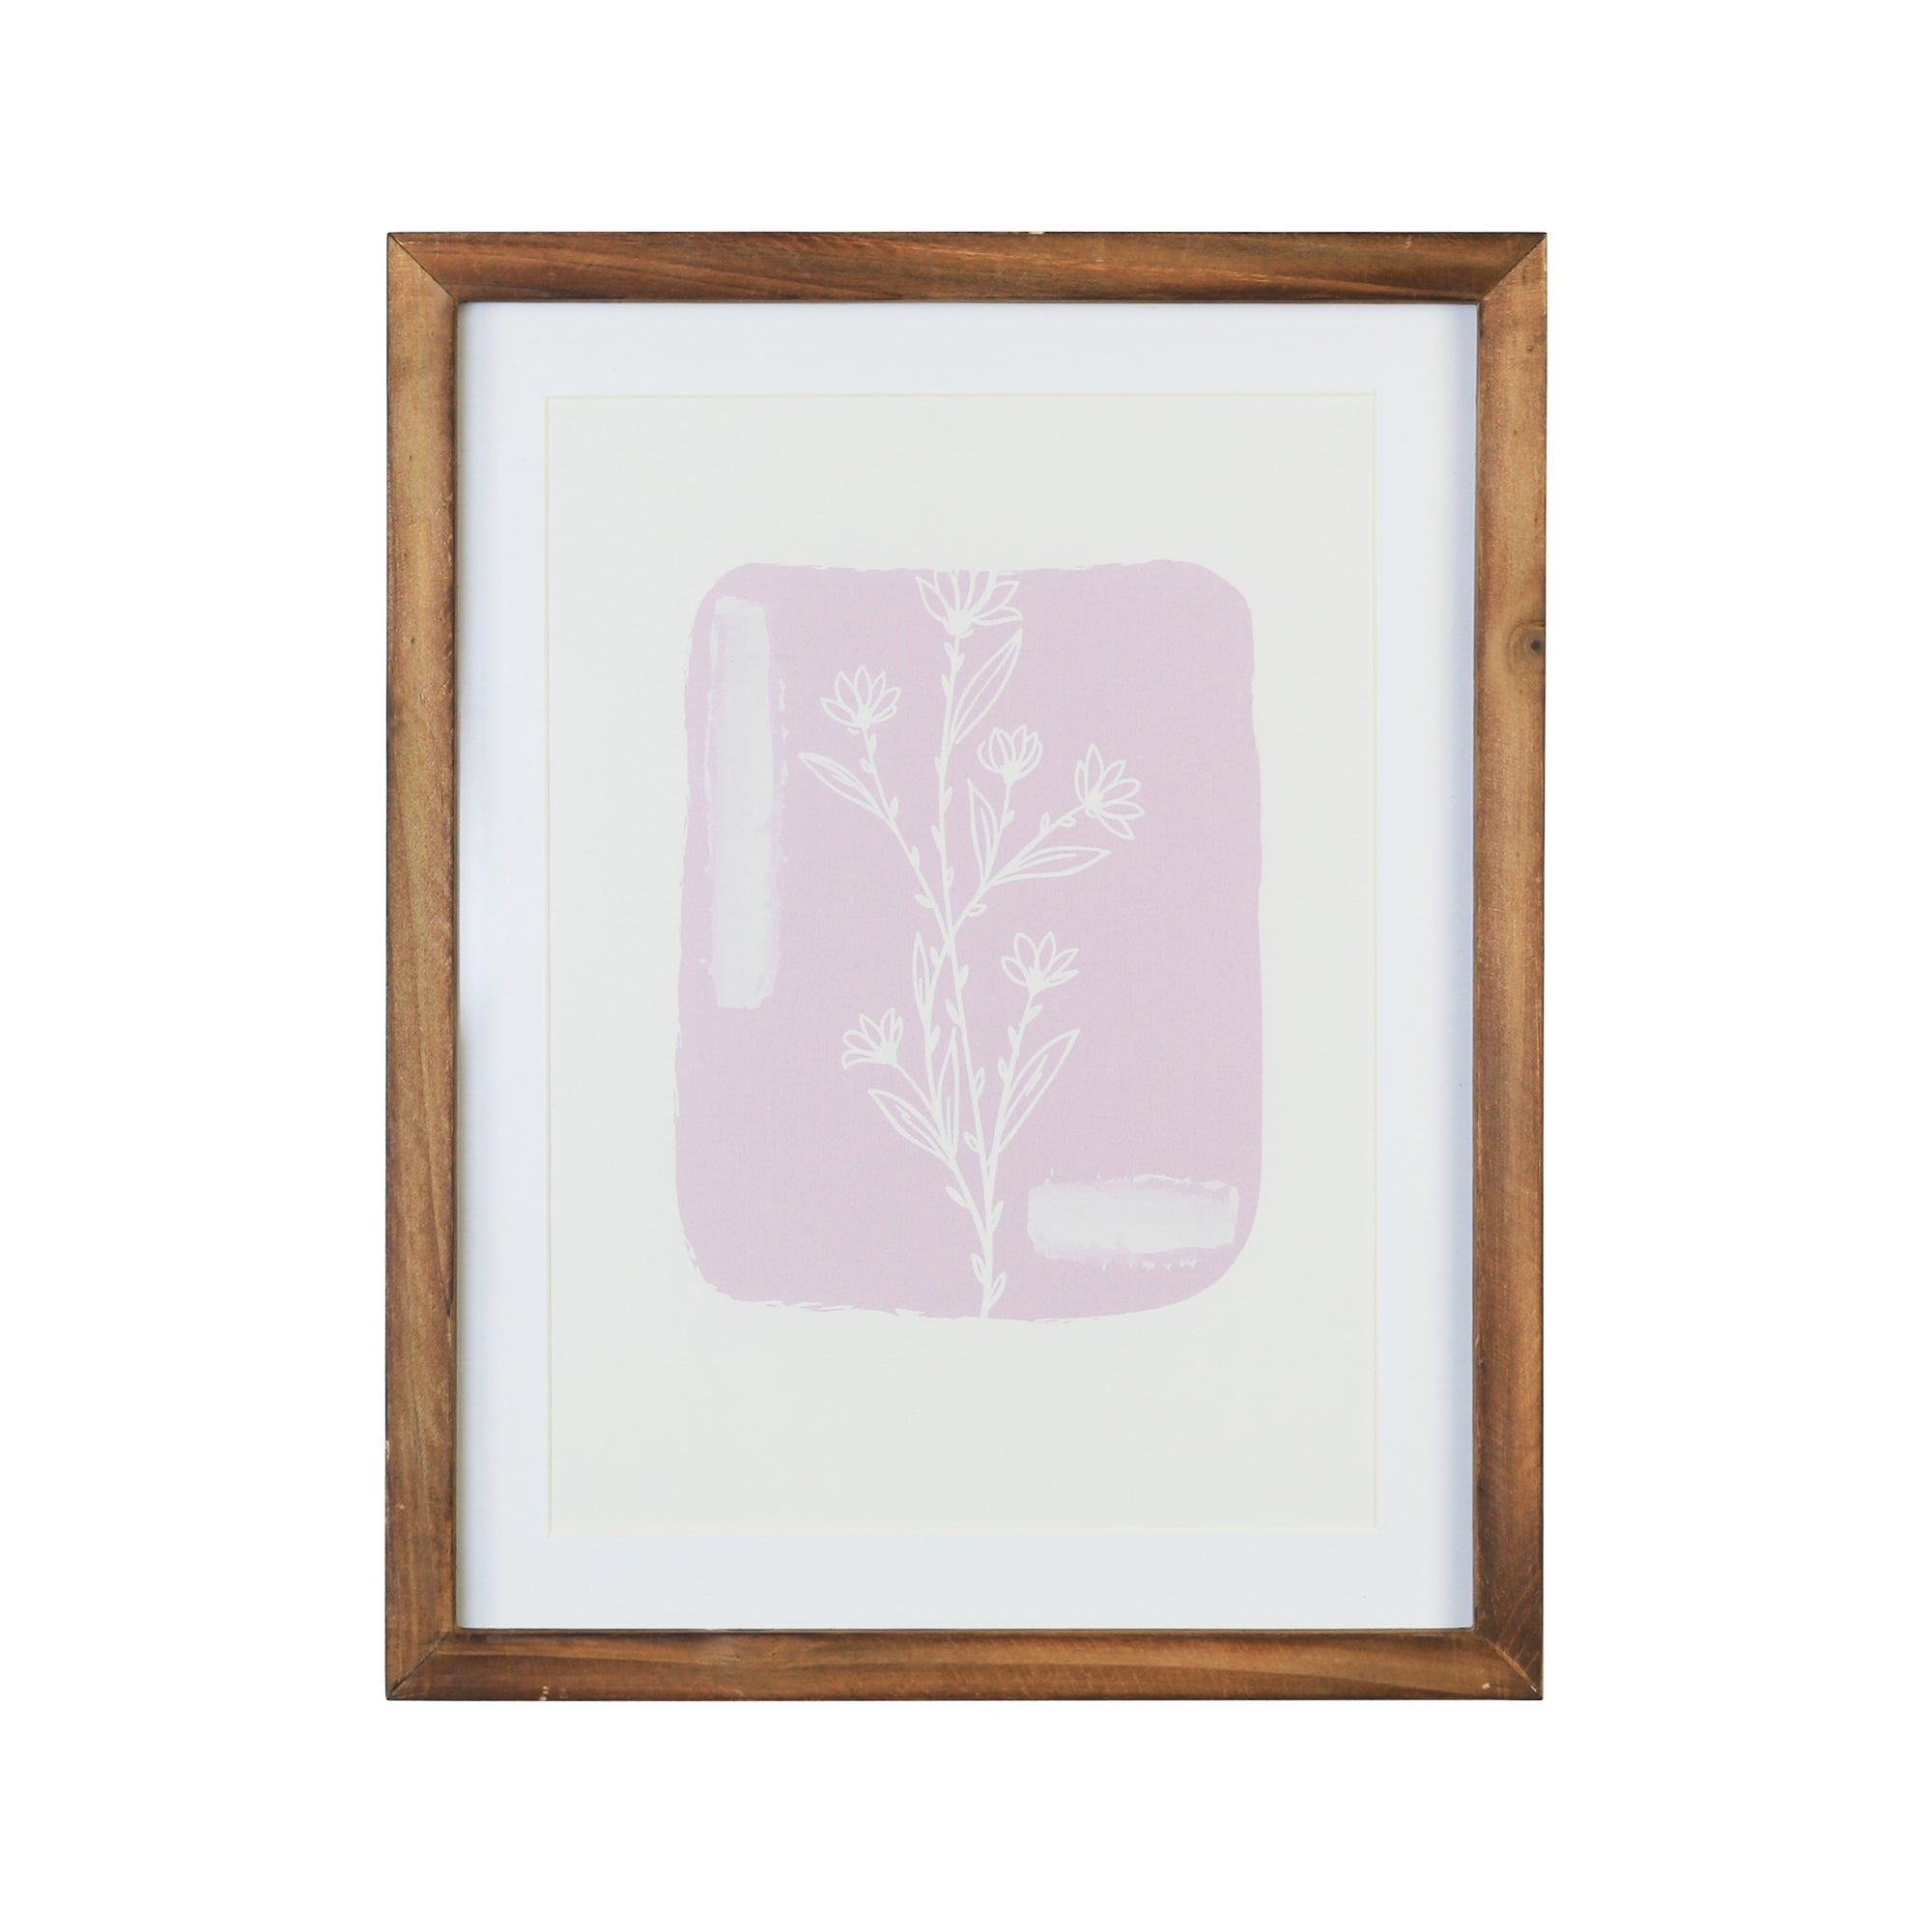 "11"" X 14"" Botanical Framed Wall Art with Glass"